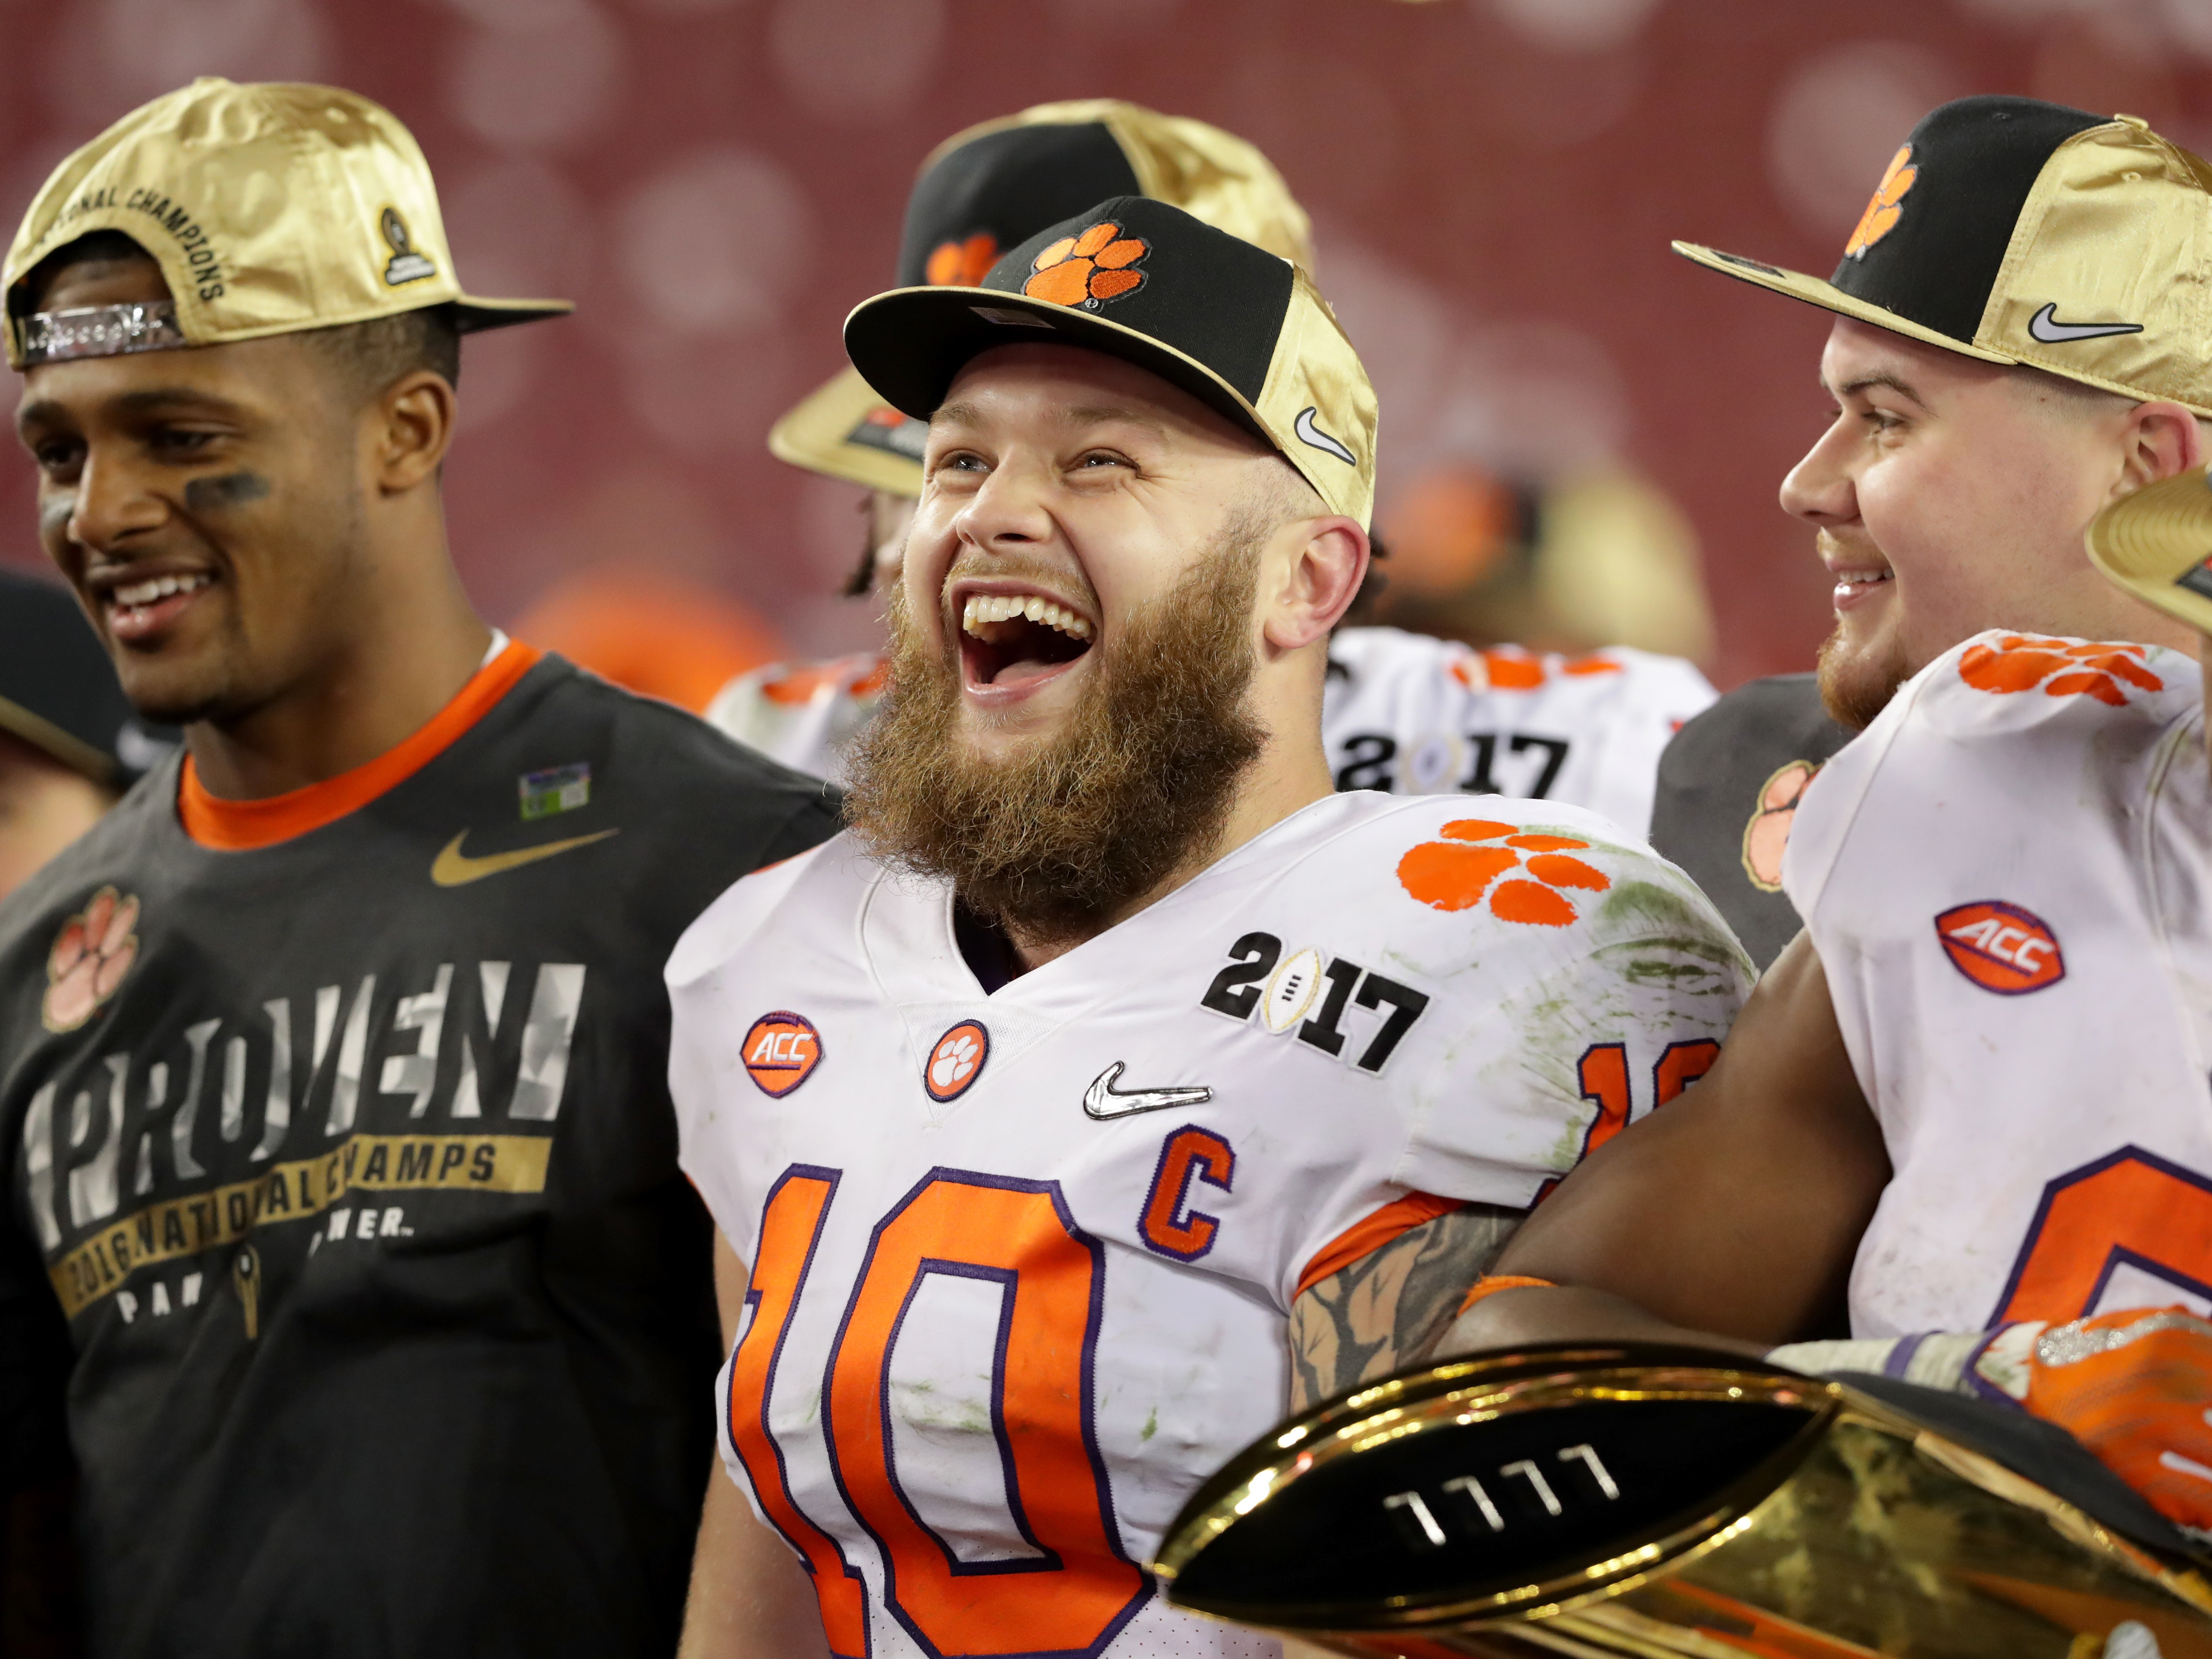 Clemson Tigers linebacker Ben Boulware, center, celebrates after his team defeated the Alabama Crimson Tide 35-31 to win the 2017 College Football Playoff National Championship Game. (Streeter Lecka/Getty Images)